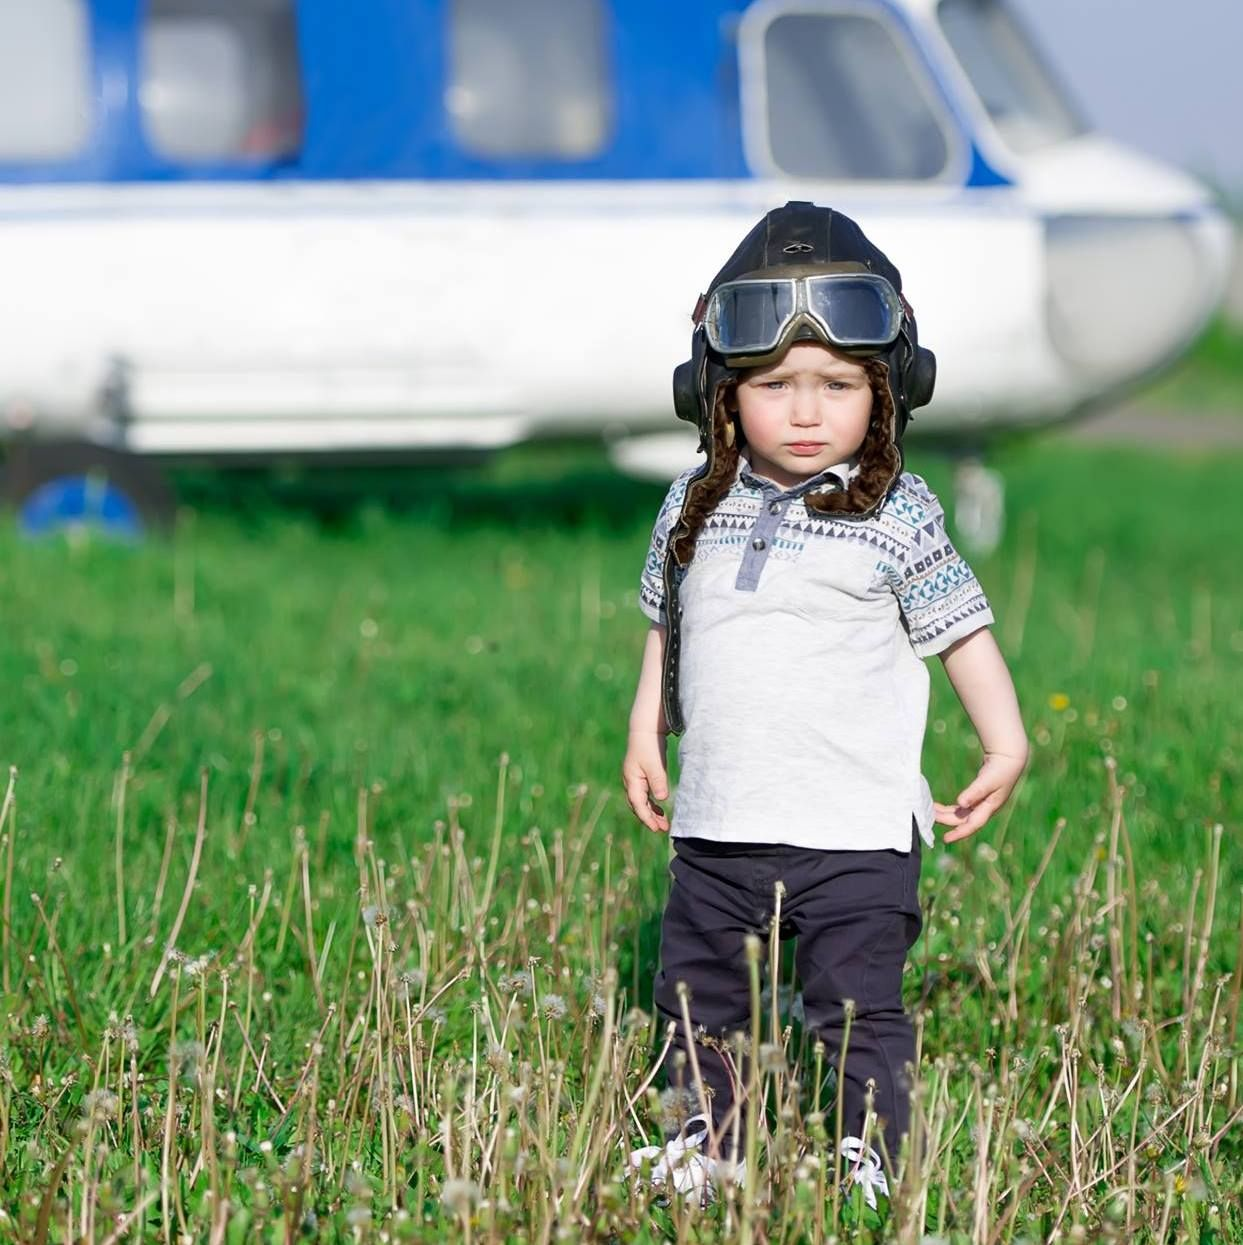 Confessions Of A Recovering Helicopter Parent Guest Post